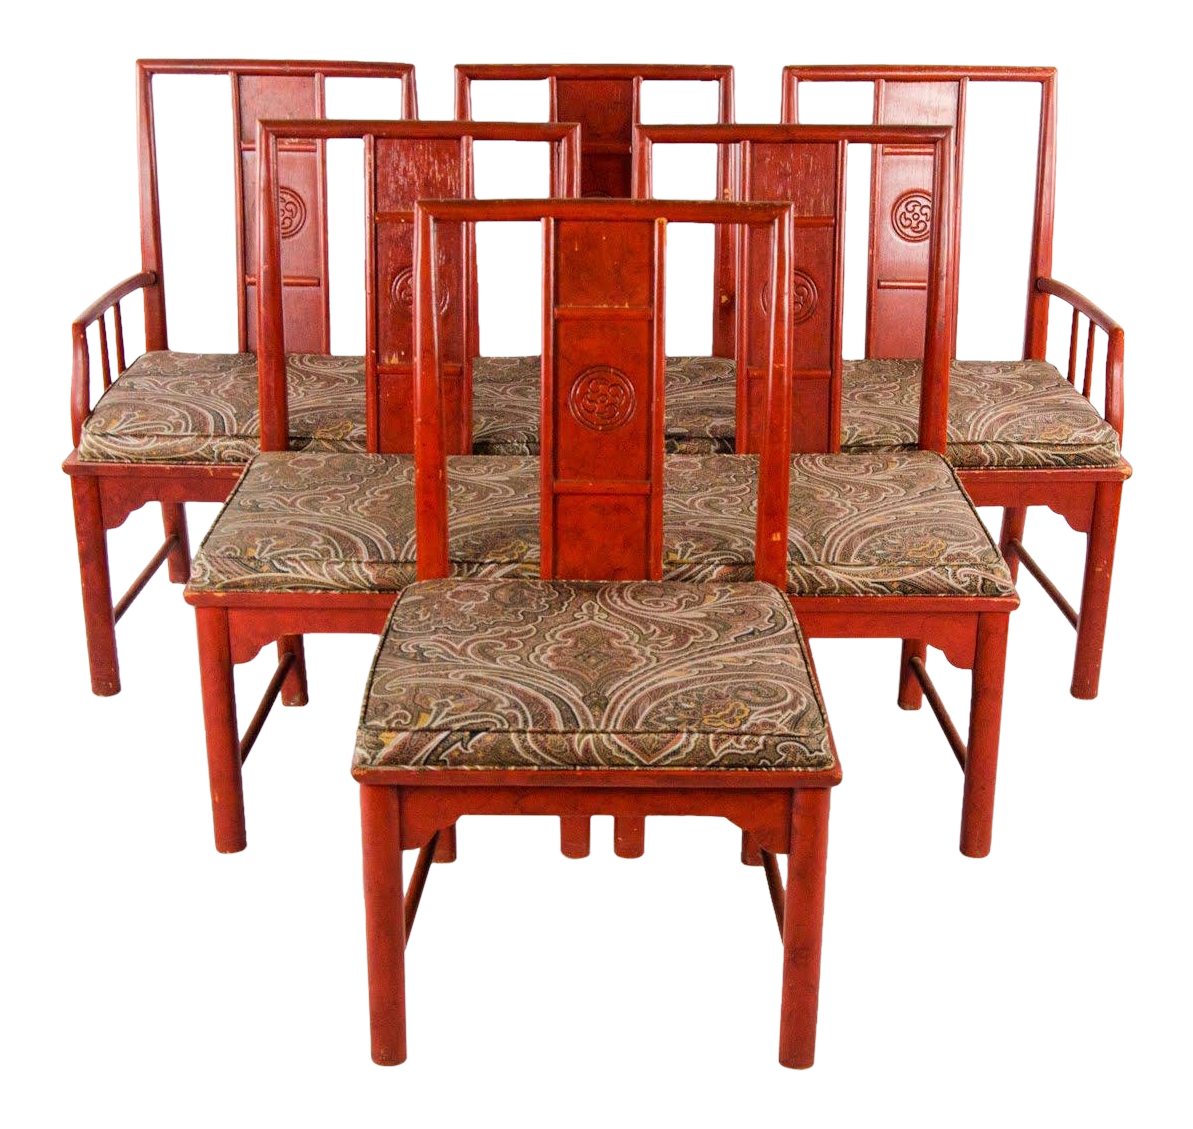 Red lacquered furniture Lacquering Early 20th Century Vintage Thomasville Chinese Style Red Lacquer And Upholstered Dining Chairs Set Of Chairish Early 20th Century Vintage Thomasville Chinese Style Red Lacquer And